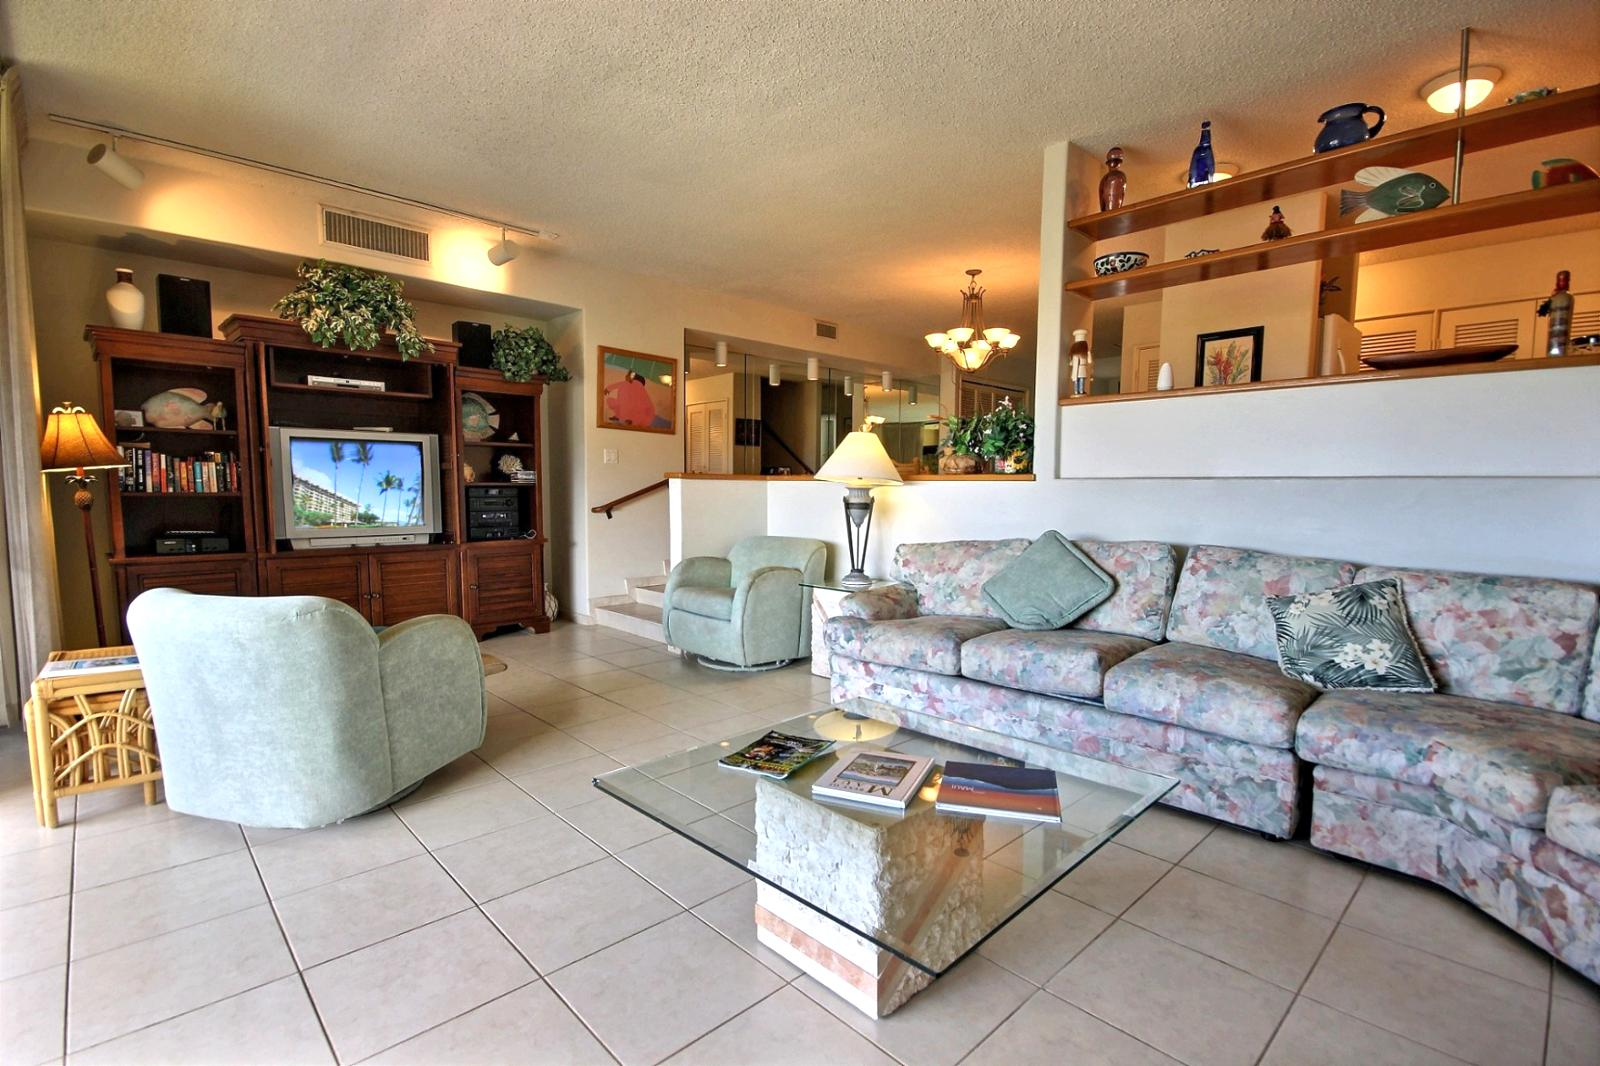 Big open living space that has a large L shaped queen sofa bed couch.